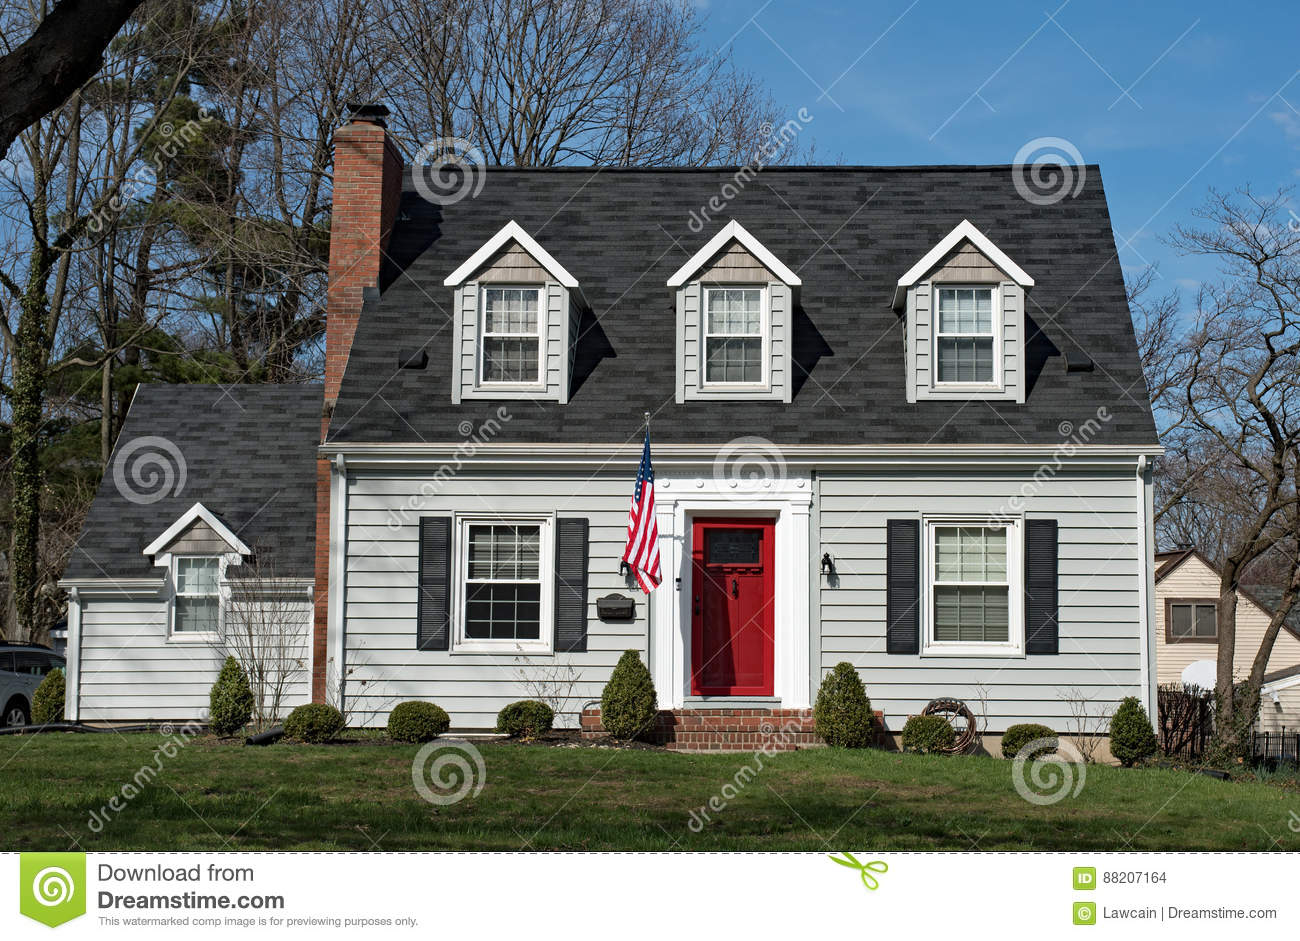 Cape Cod House With Three Dormers Amp Red Door Stock Photo